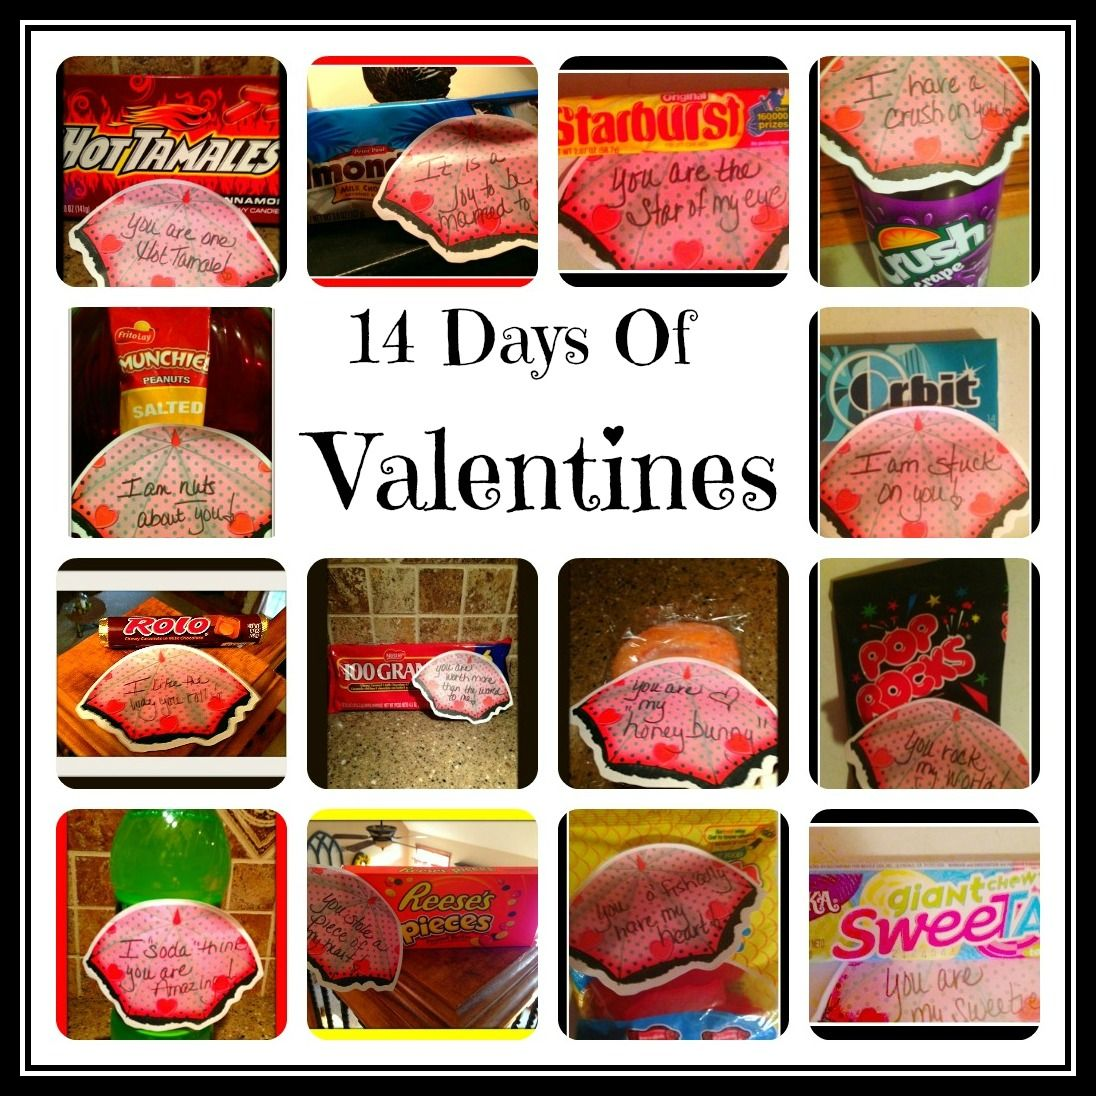 farming on faith 14 days of valentines gift idea - 14 Days Of Valentines For Him